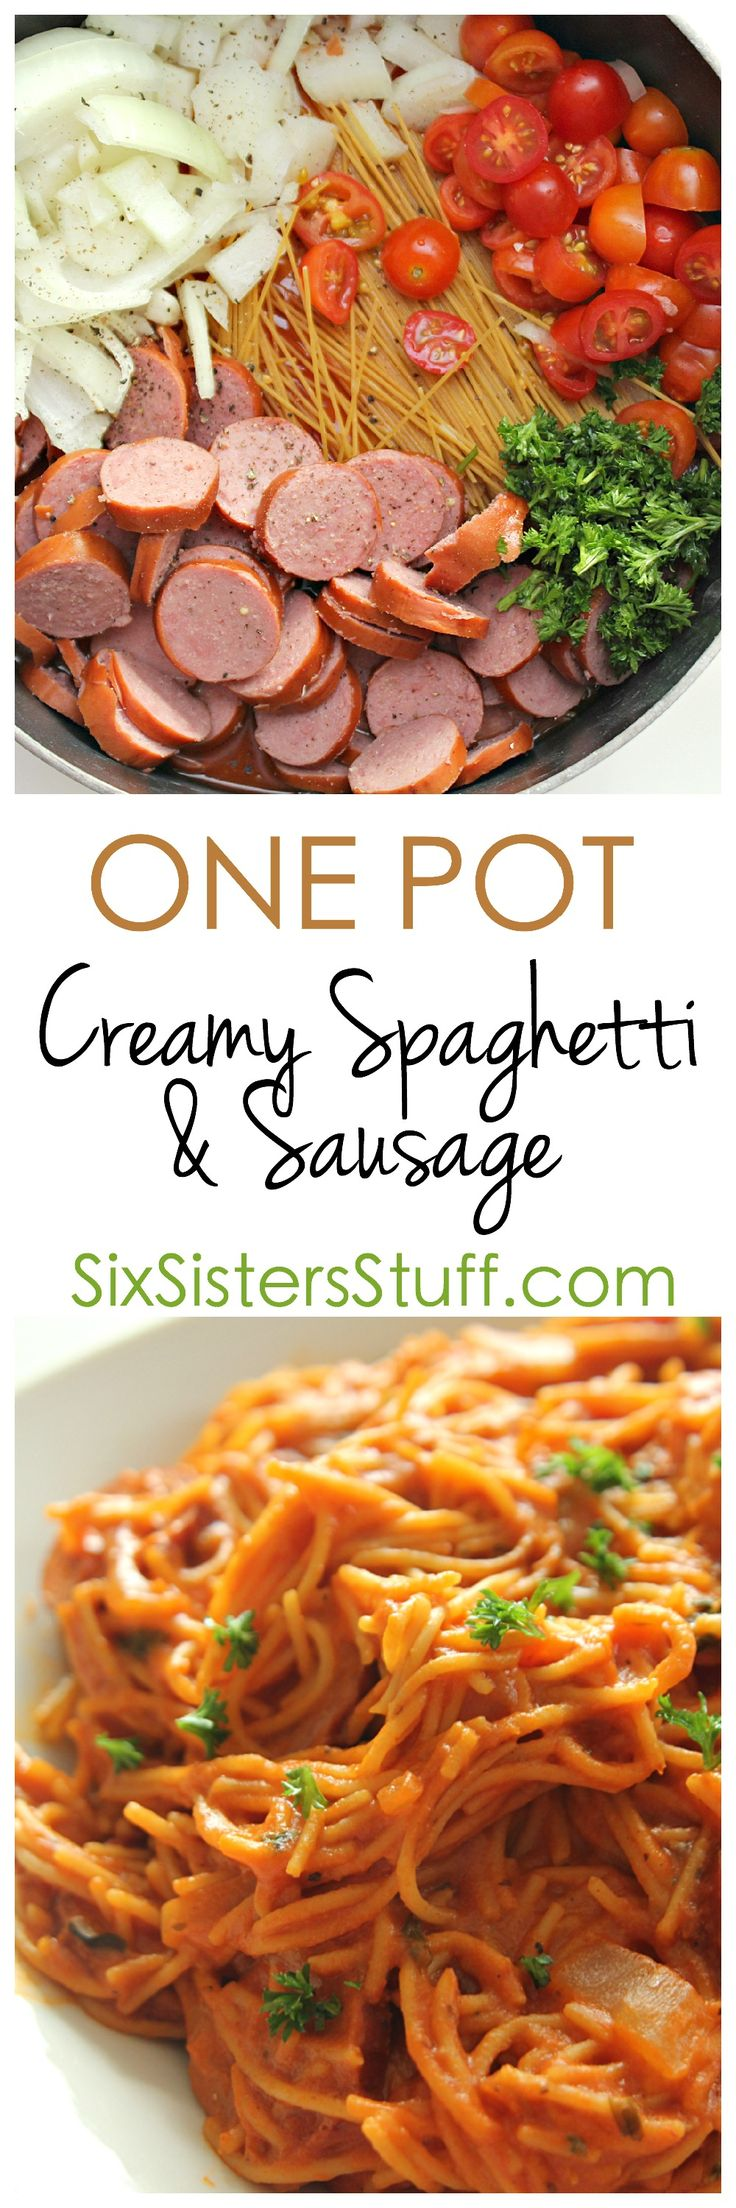 EASY One Pot Creamy Spaghetti and Sausage Skillet on SixSistersStuff.com - ready in less than 30 minutes! @RagúSauce #OnePotPasta